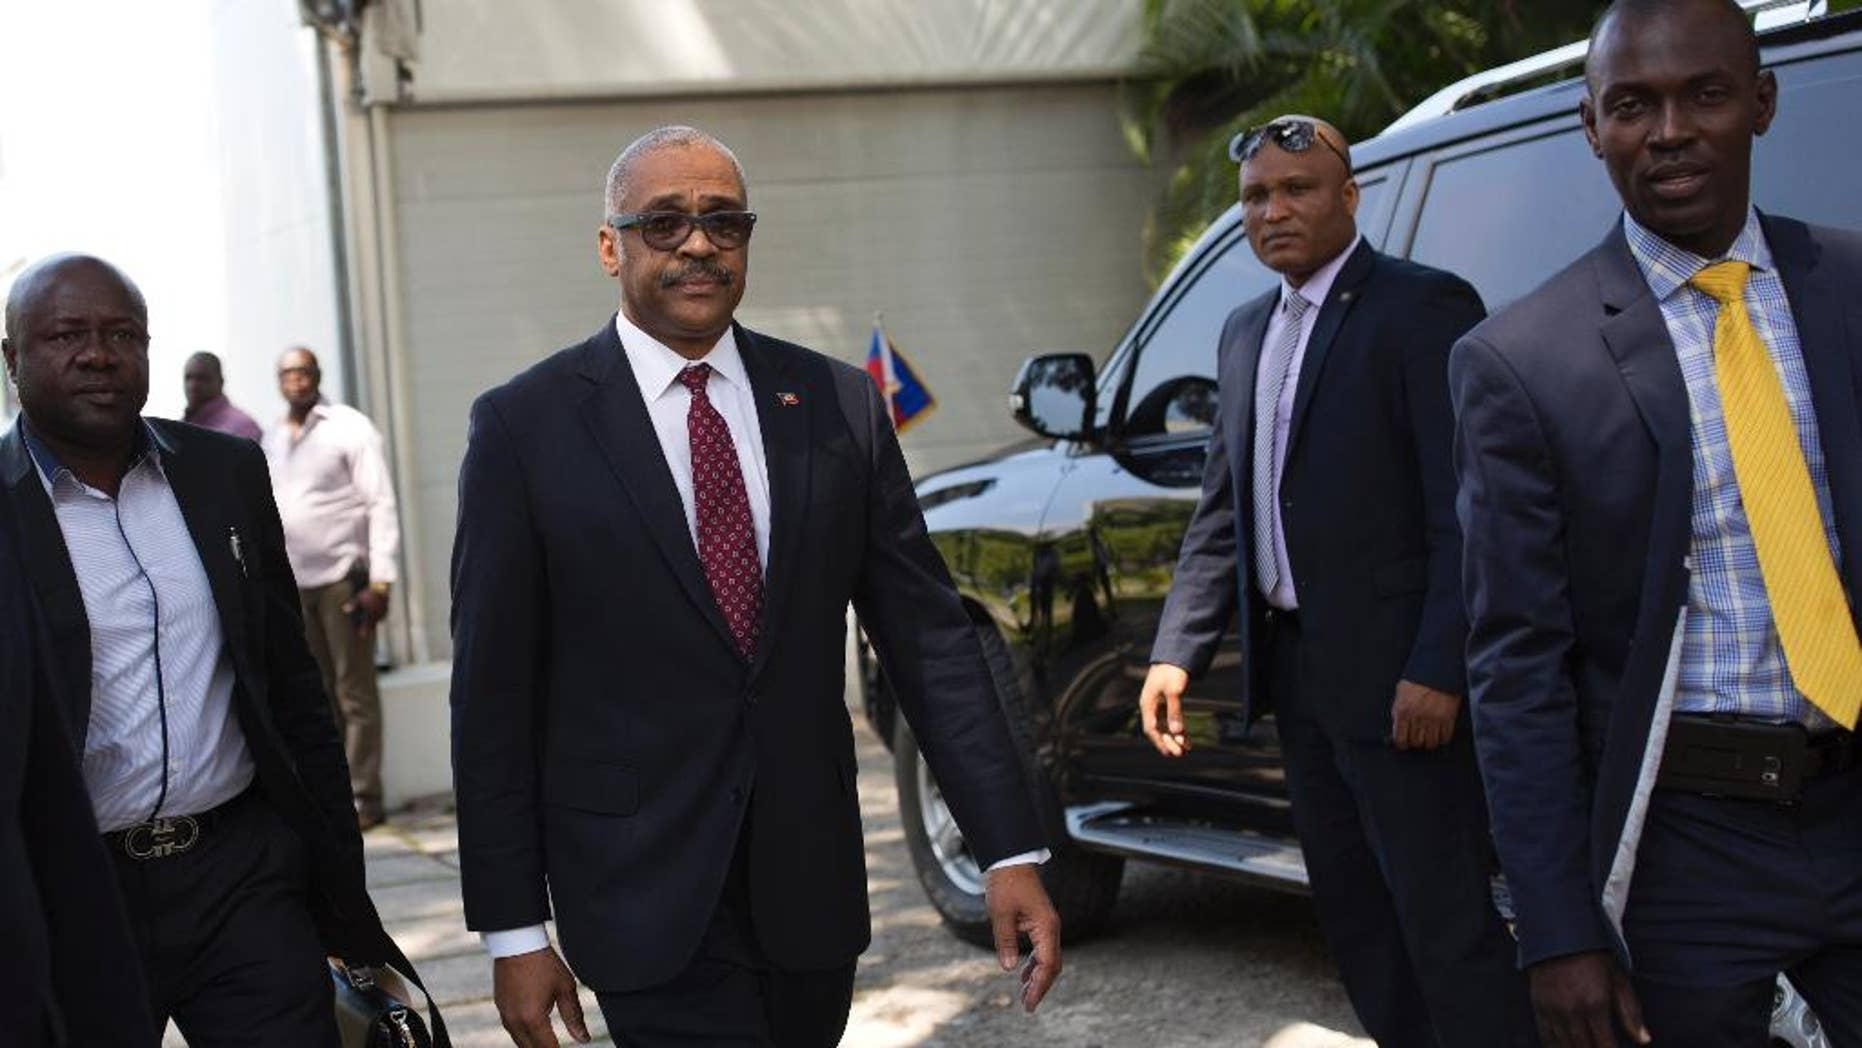 FILE - In this Feb. 24, 2017, file photo, Haiti's newly nominated Prime Minister Dr. Jack Guy Lafontant, center, arrives at the national palace for his nomination ceremony in Port-au-Prince, Haiti. Lafontant, a gastroenterologist and head of the Rotary Club in the commercial district of Petionville has been ratified as Haiti's Prime Minister on Tuesday, March 21. (AP Photo/Dieu Nalio Chery, File)